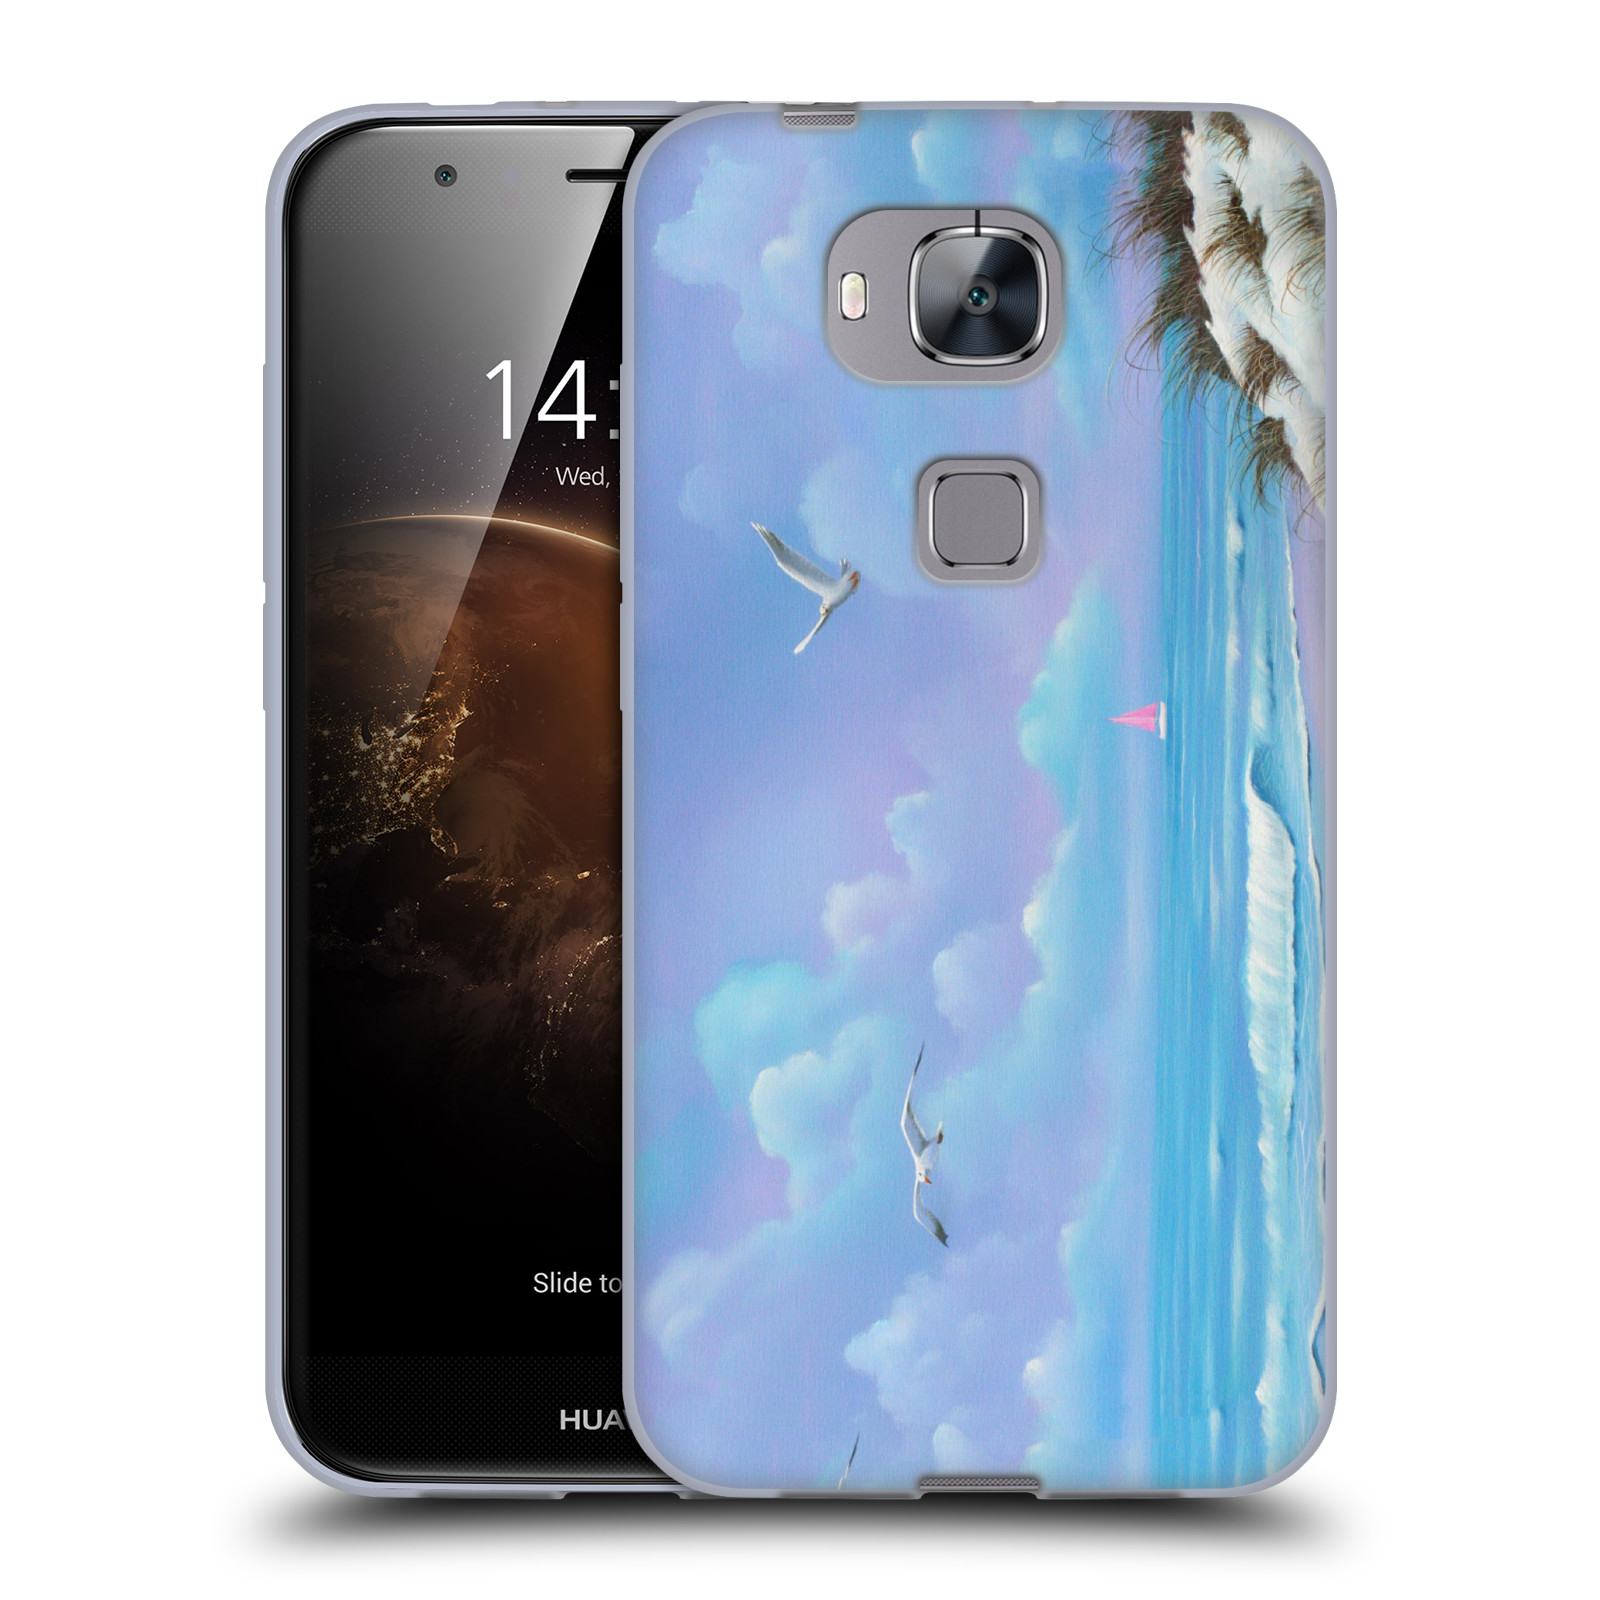 OFFICIAL-GENO-PEOPLES-ART-HOLIDAY-SOFT-GEL-CASE-FOR-HUAWEI-PHONES-2